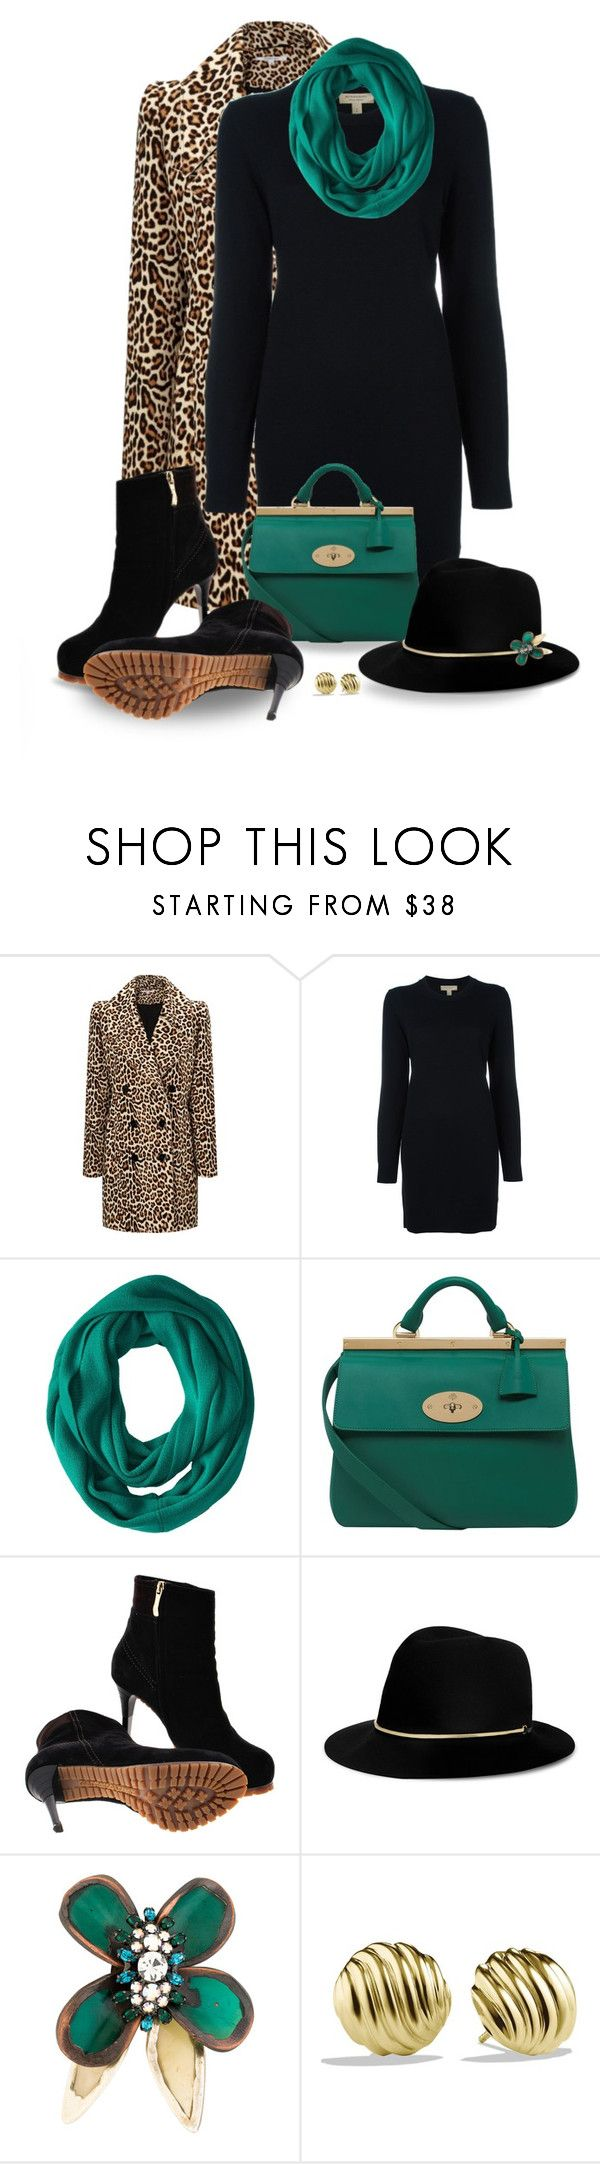 """""""Leopard Coat"""" by snickersmother ❤ liked on Polyvore featuring Carven, Burberry, Calvin Klein, Mulberry, Gianmarco Lorenzi, Janessa Leone, Marni and David Yurman"""